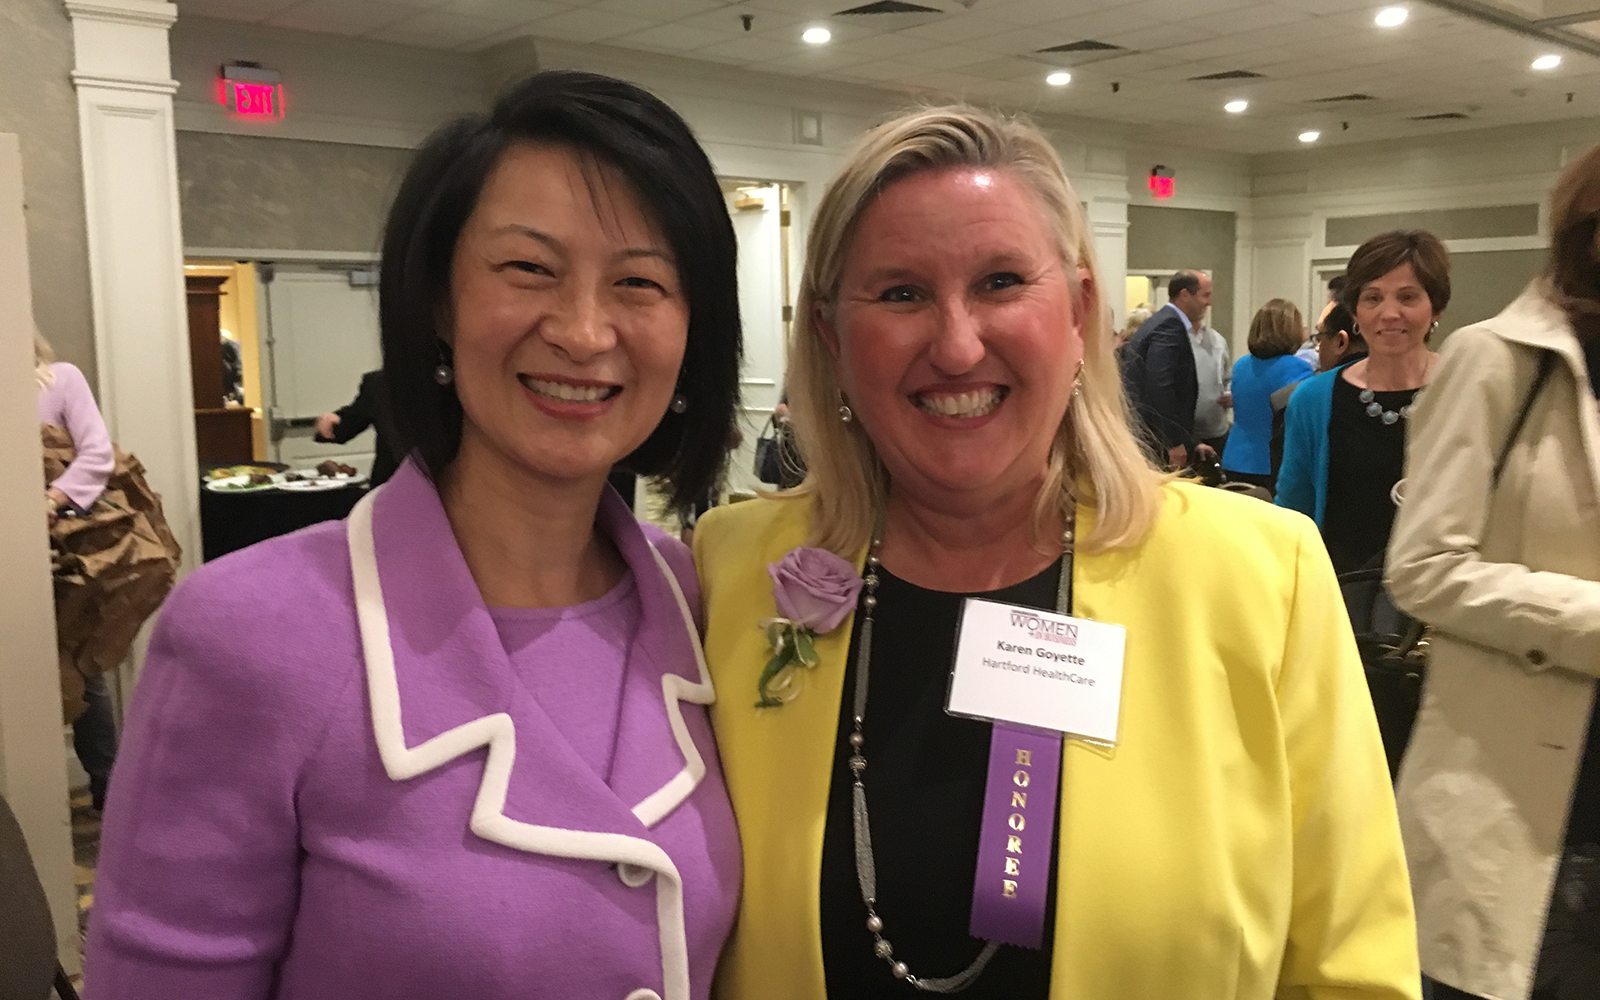 Sulin Ba, associate dean of Academic and Research Support at the UConn School of Business, poses for a photo with Karen Goyette '91, senior vice president of Strategy and System Integration at Hartford Healthcare. Goyette and seven other remarkable women in business were honored during a May 10 ceremony at the Hartford Hilton. (Michael Deotte/UConn School of Business)